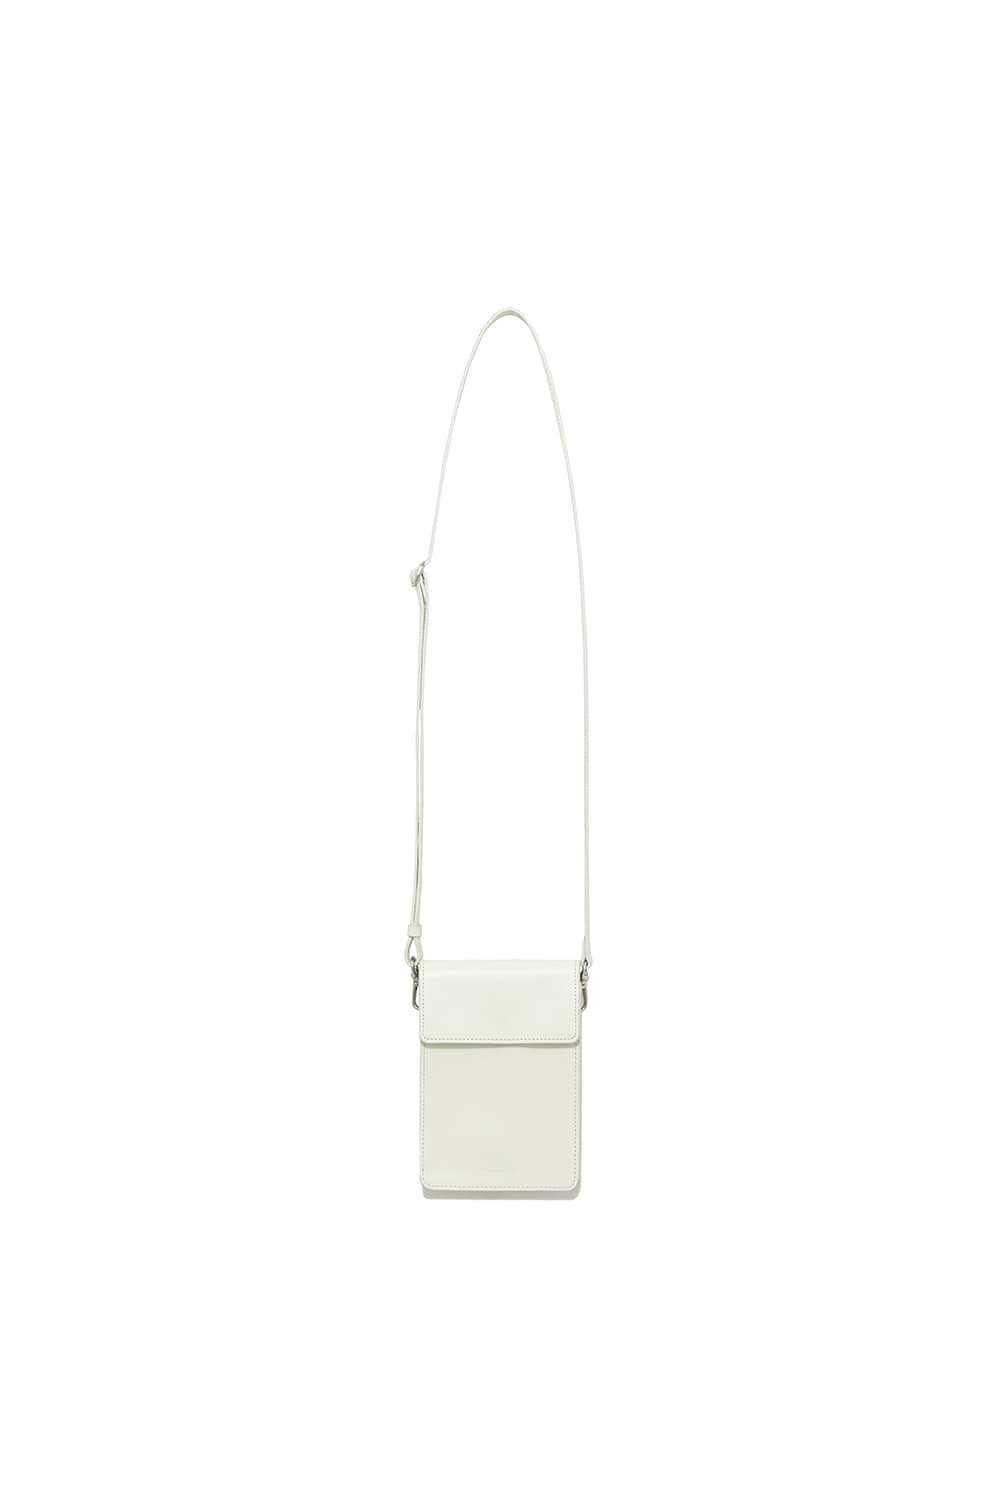 Mini Leather Bag [Ivory]